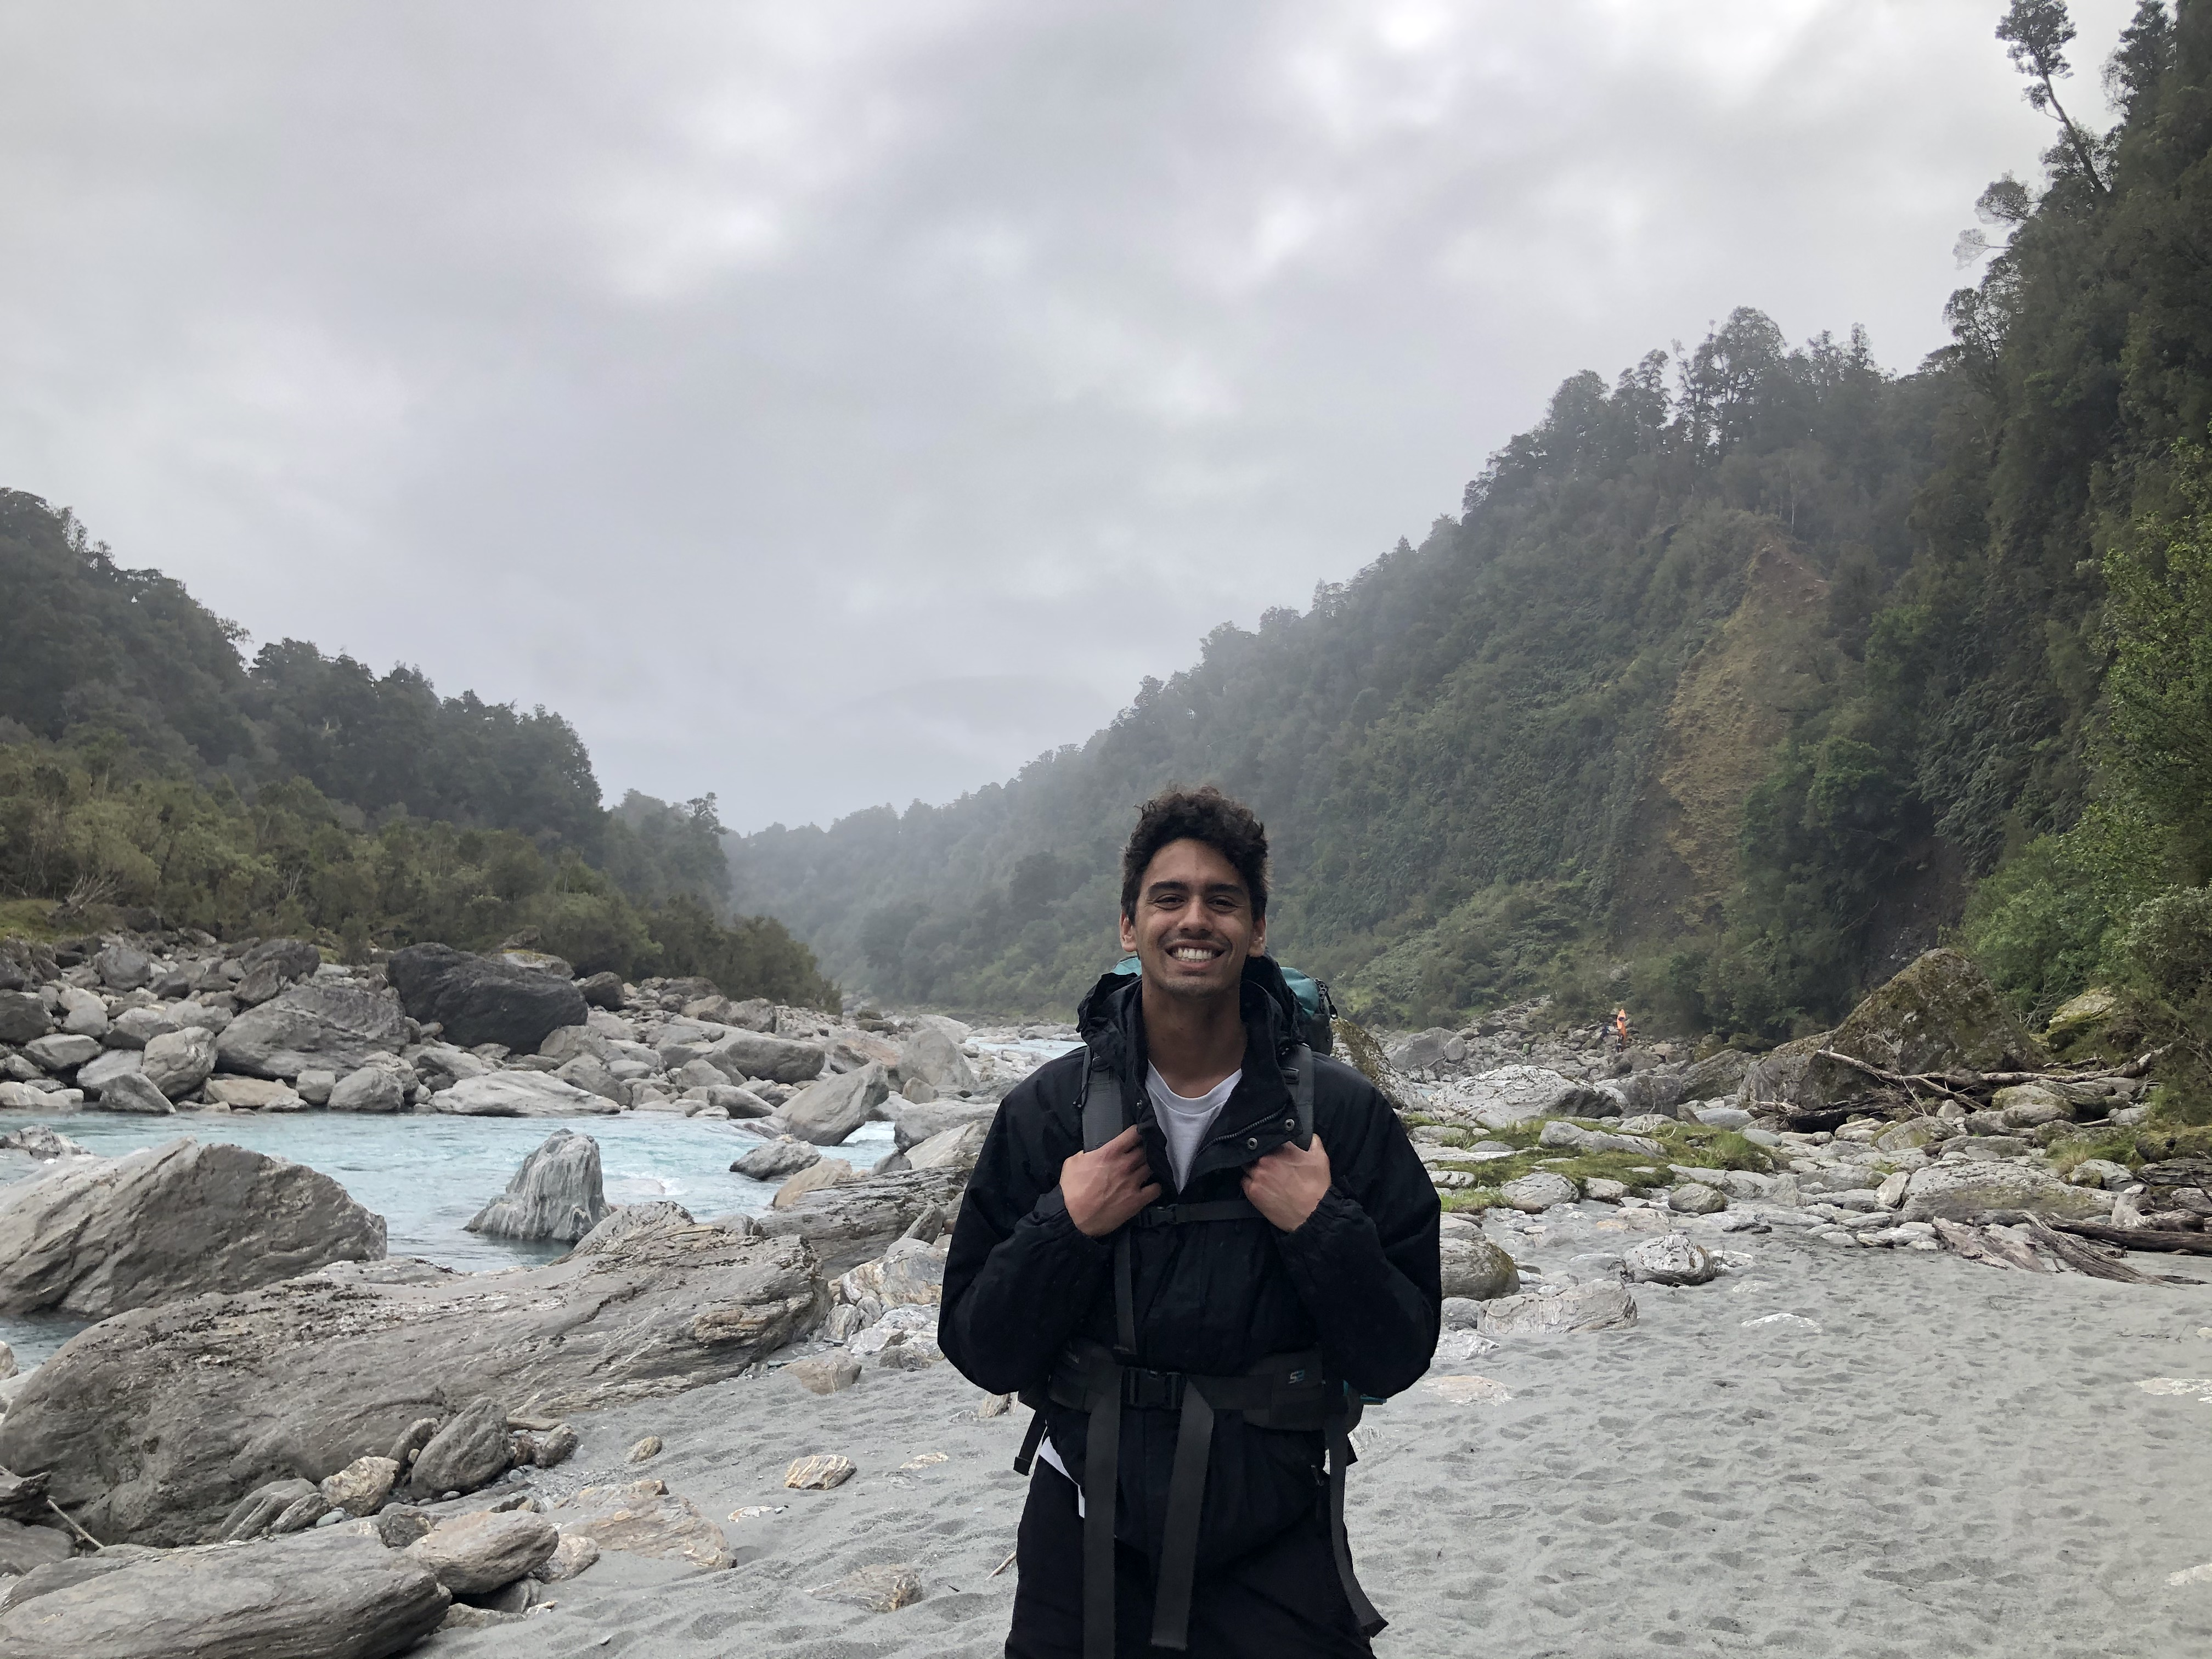 Young man standing and smiling at the camera whilst gripping the straps of his backpack which is on his shoulders. Behind him is a blue river, a rocky river bed and pine trees. There is a grey cloudy sky with mist starting to cover the trees.